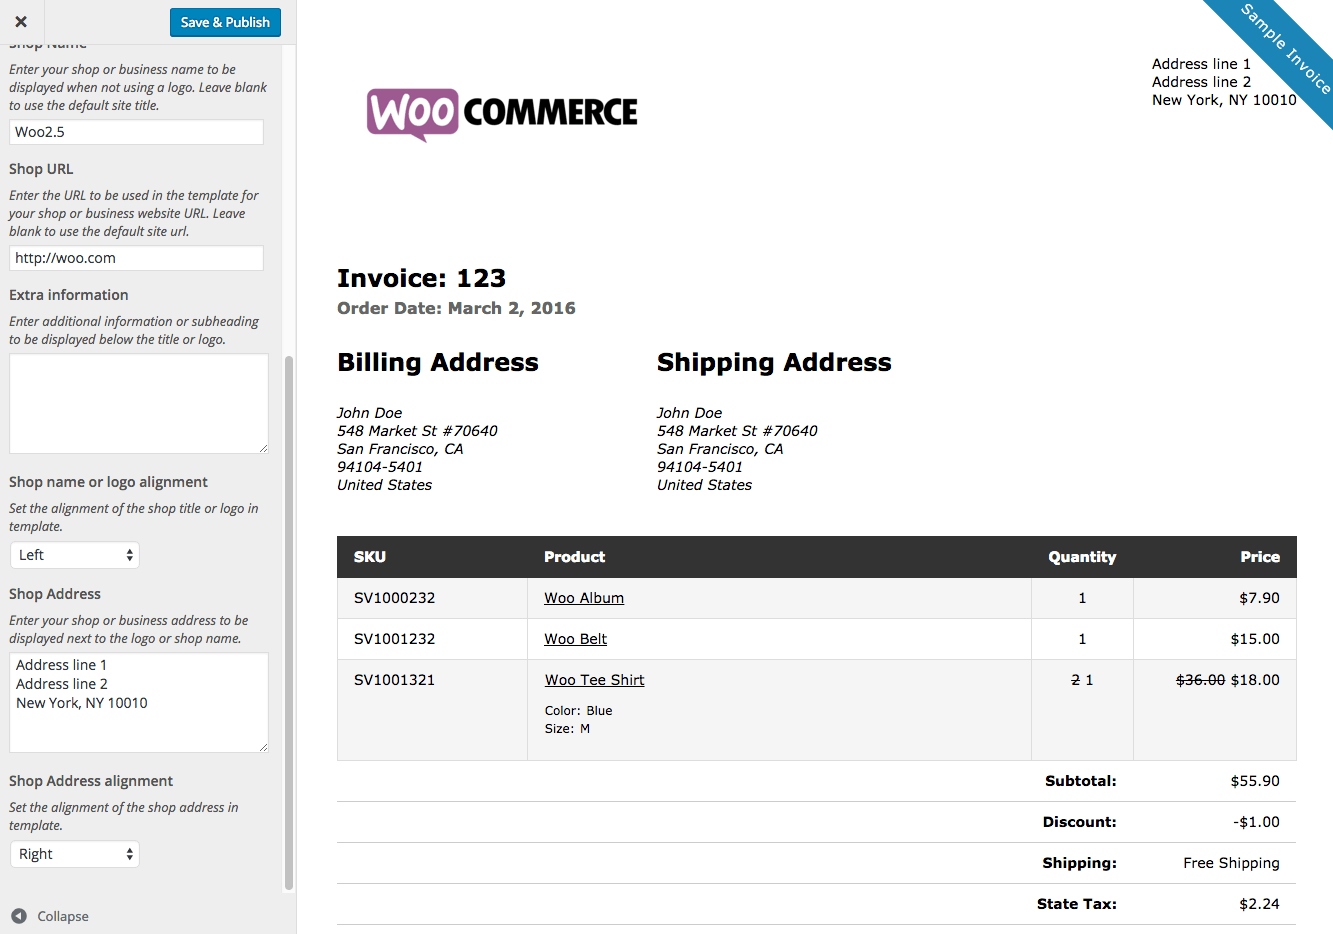 Helpingtohealus  Surprising Woocommerce Print Invoices Amp Packing Lists  Woocommerce Docs With Foxy Woocommerce Print Invoices  Packing Lists Customizer With Breathtaking Meaning Of Invoice Price Also Microsoft Access Invoice In Addition Window Cleaning Invoice Template And Invoice For Excel As Well As Honda Fit Dealer Invoice Additionally  Honda Odyssey Invoice Price From Docswoocommercecom With Helpingtohealus  Foxy Woocommerce Print Invoices Amp Packing Lists  Woocommerce Docs With Breathtaking Woocommerce Print Invoices  Packing Lists Customizer And Surprising Meaning Of Invoice Price Also Microsoft Access Invoice In Addition Window Cleaning Invoice Template From Docswoocommercecom